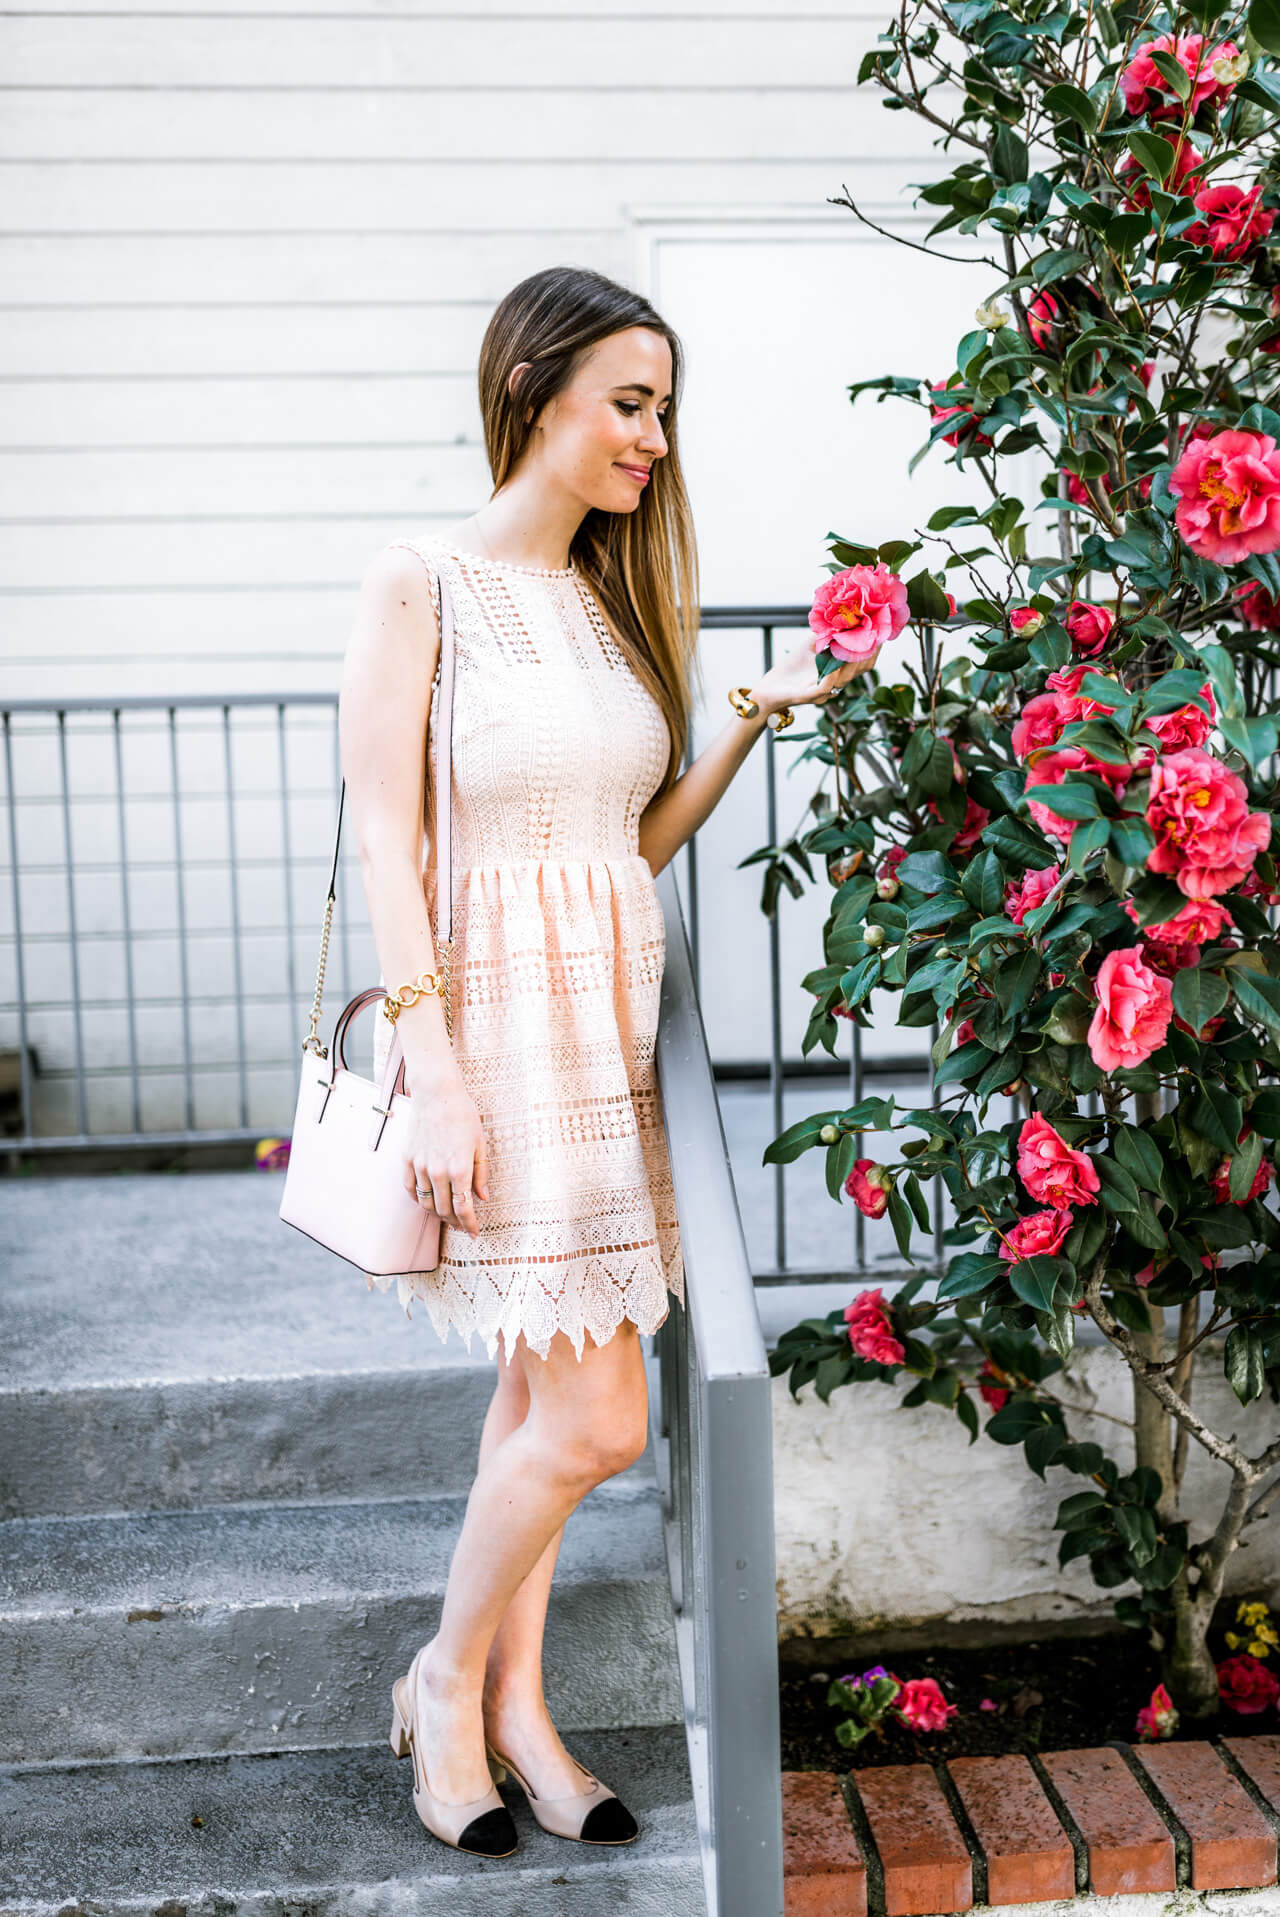 feminine outfit for spring - pink lace dress